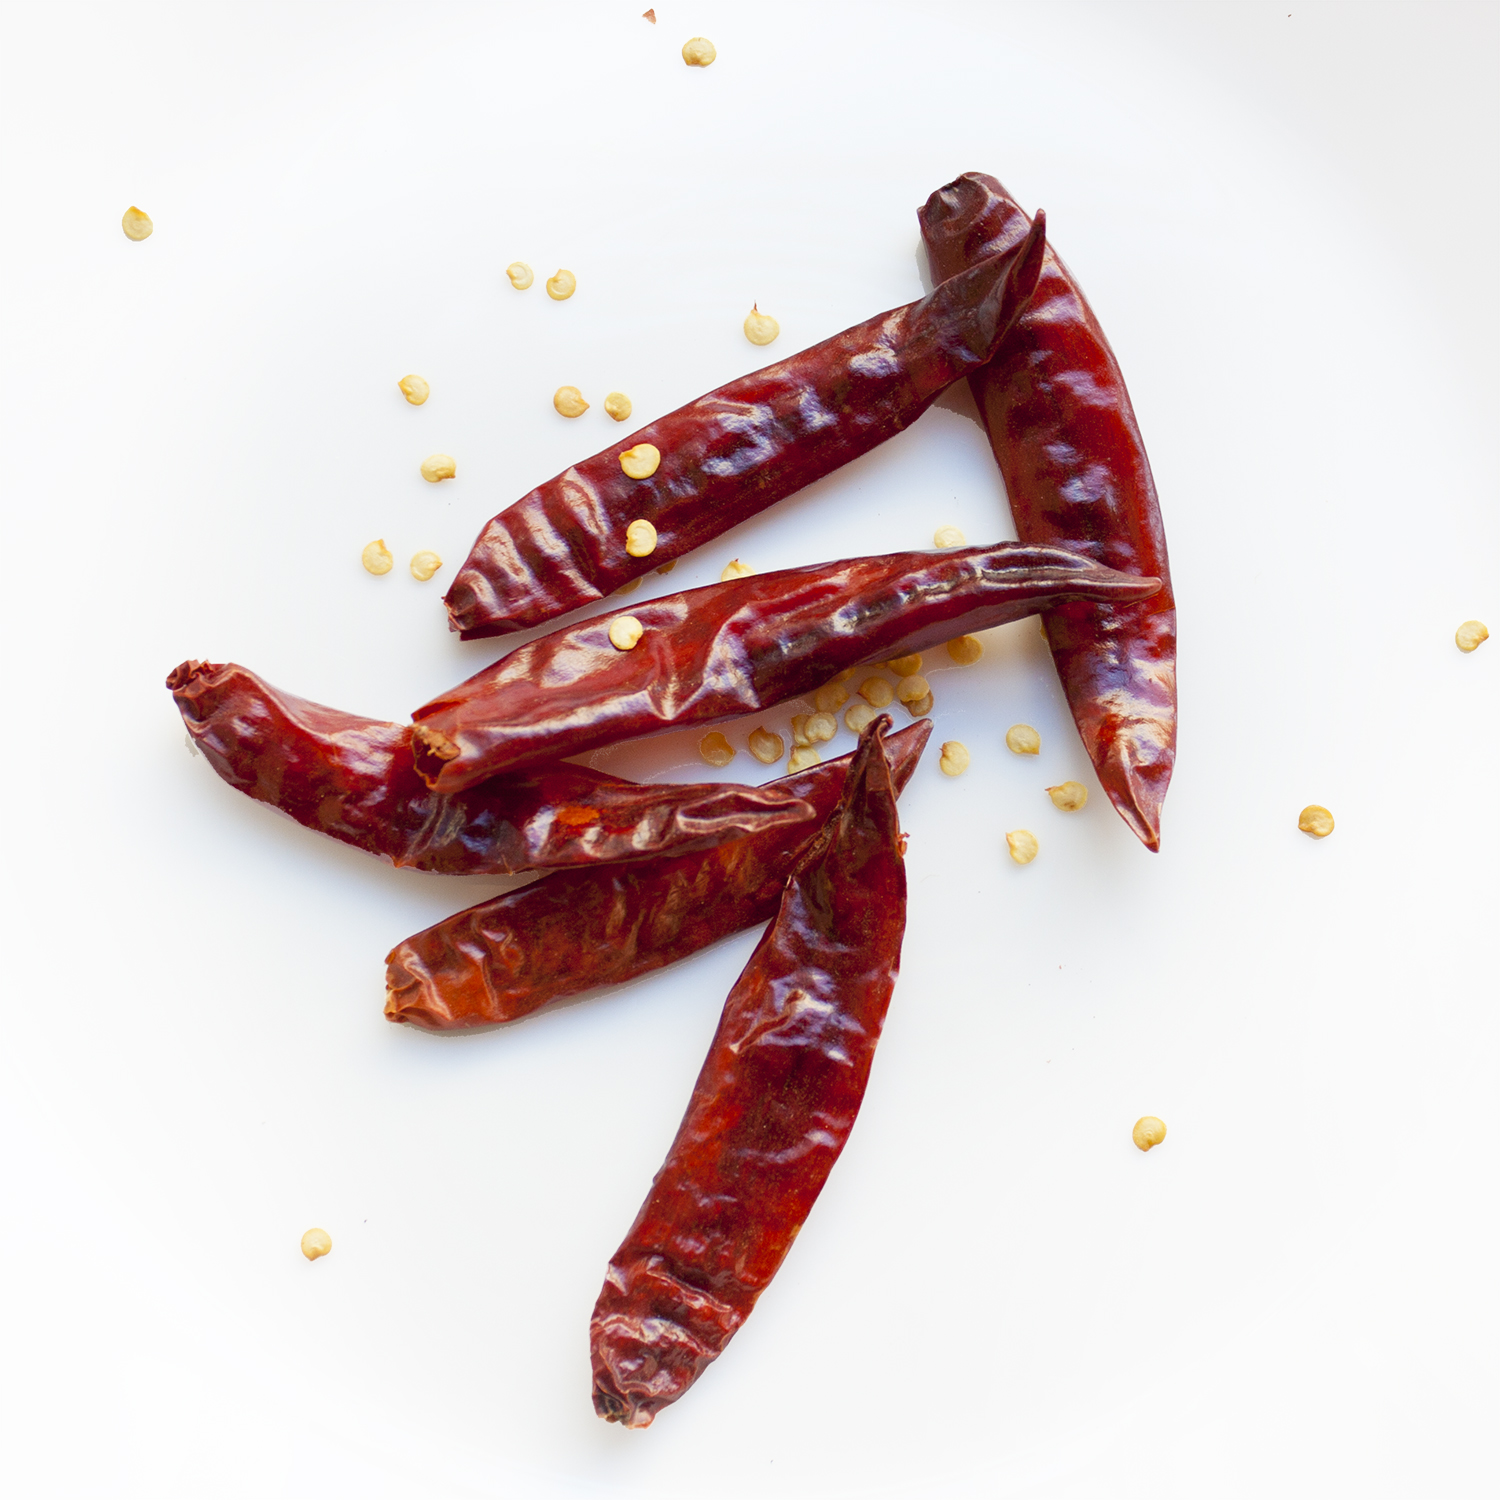 whole, dried chilis